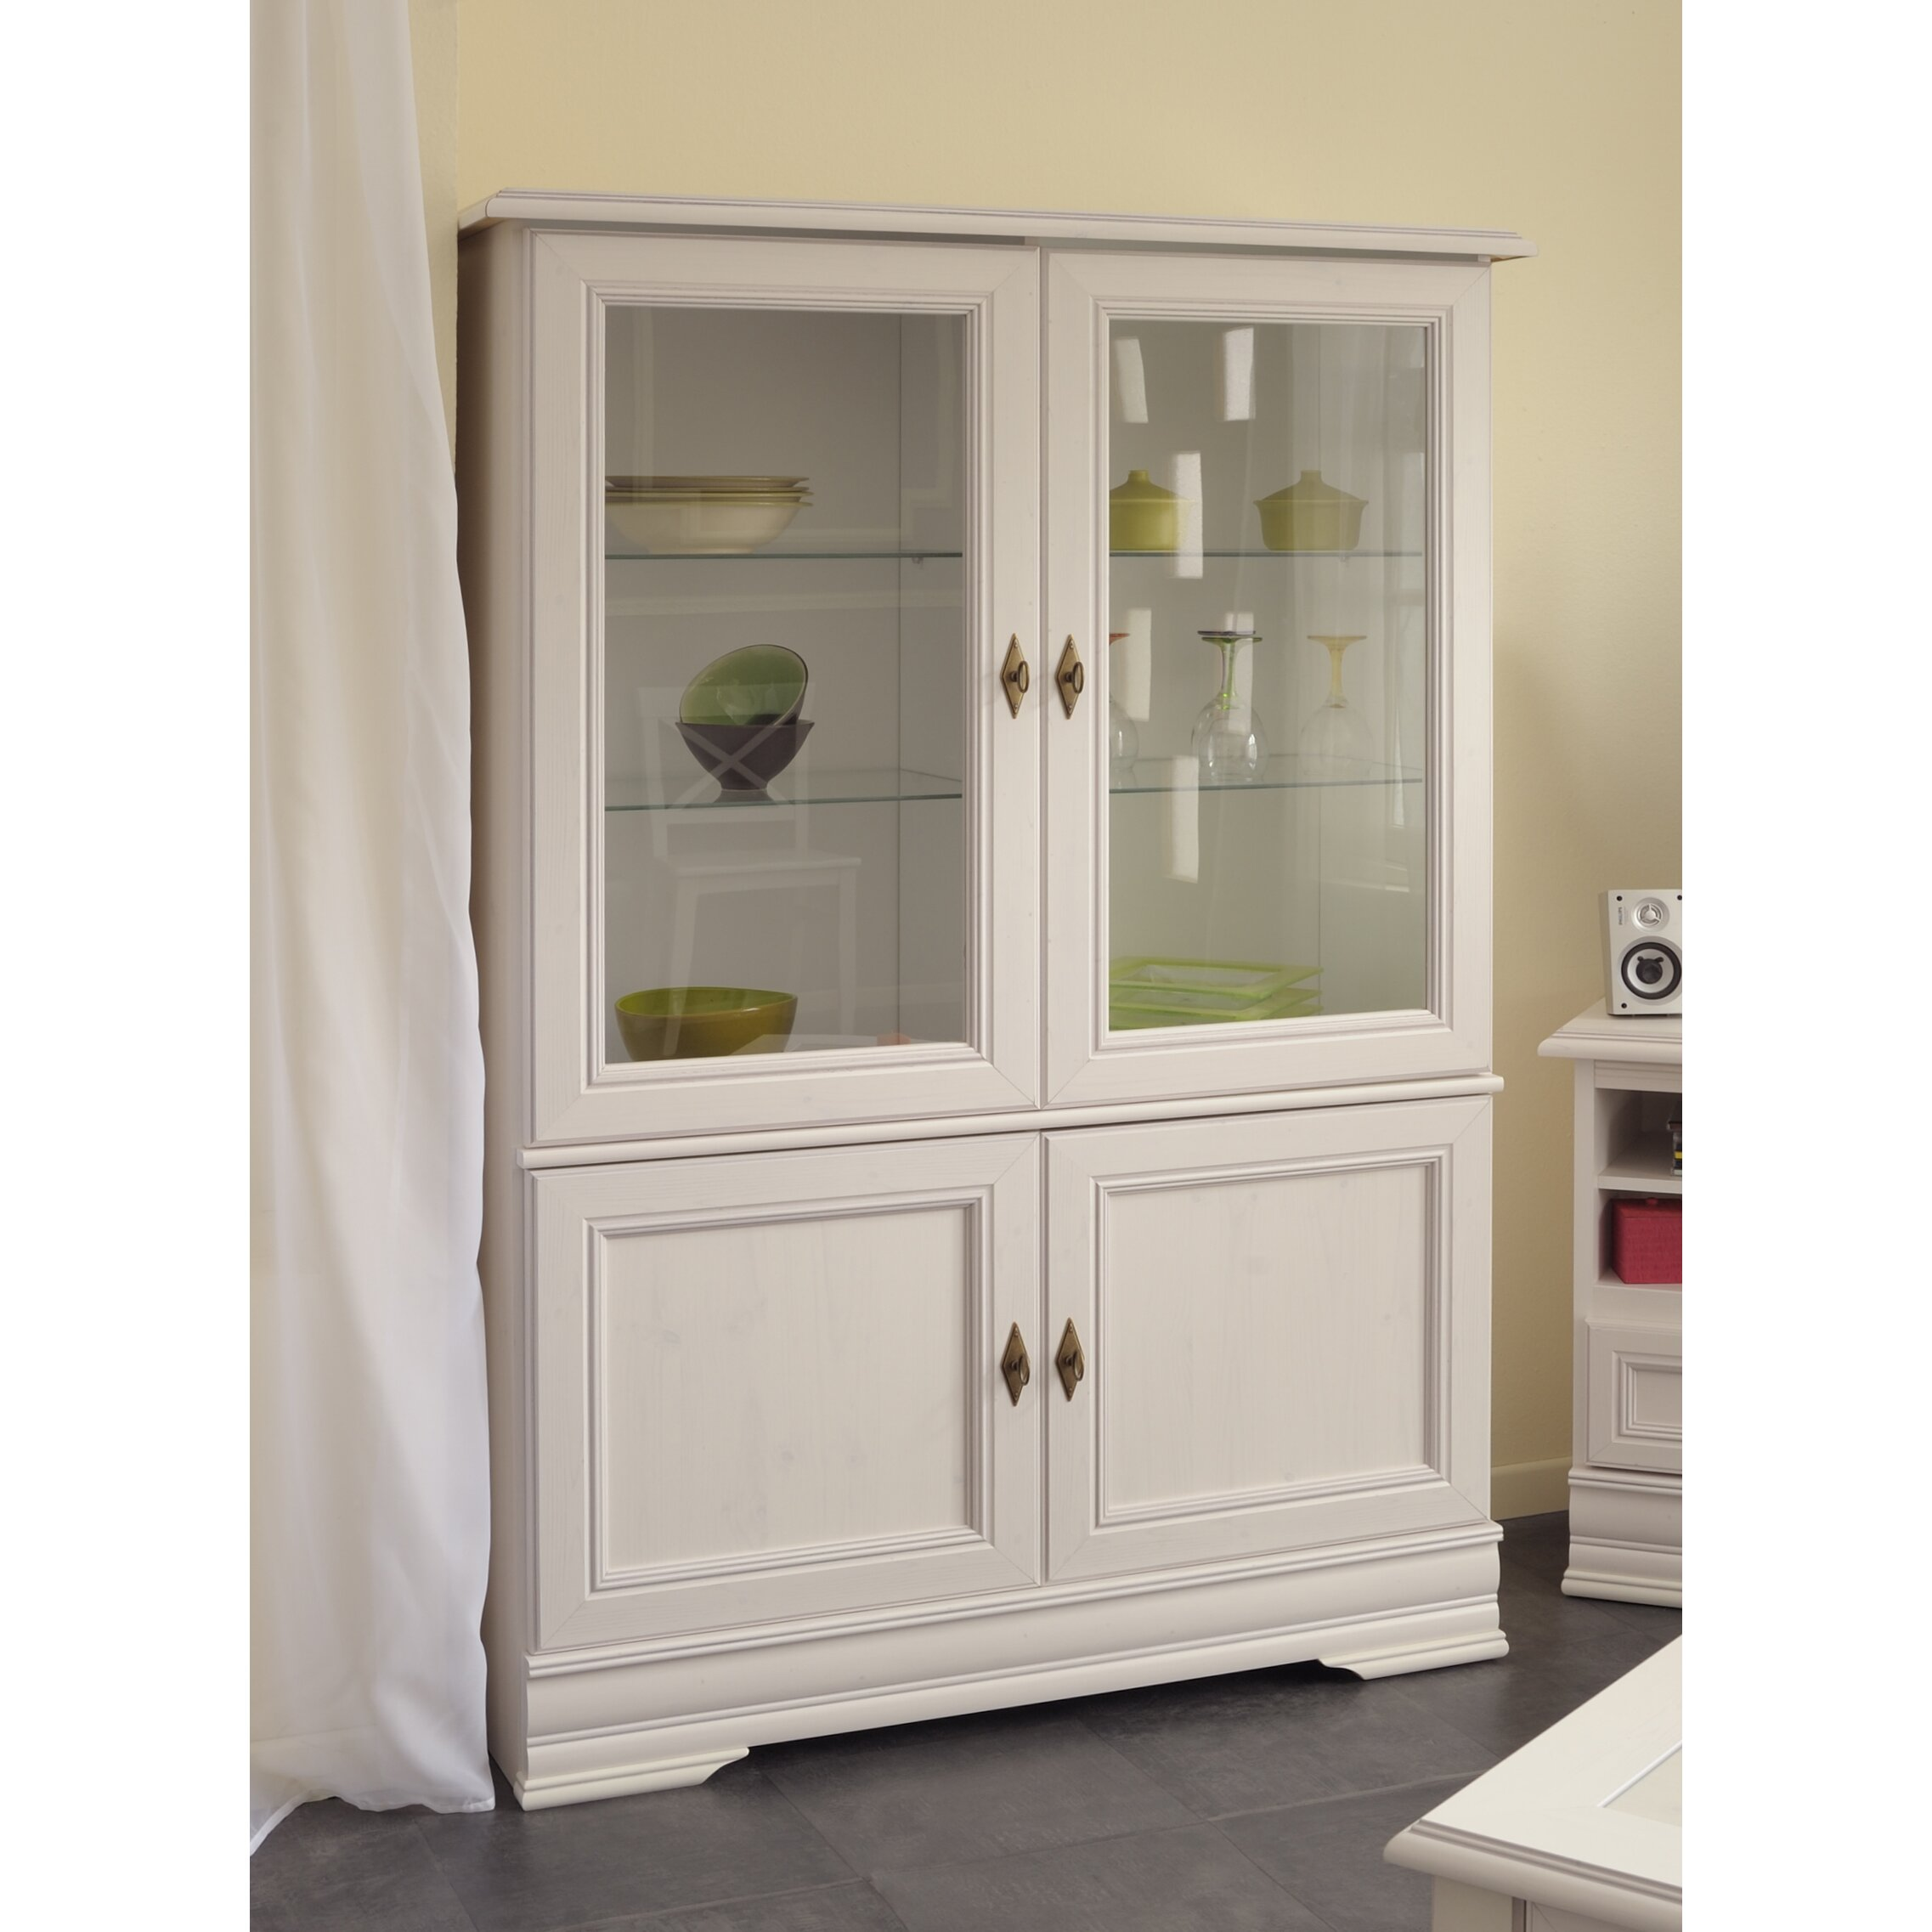 Living Room Display Cabinets Homestead Living Flores Display Cabinet Reviews Wayfaircouk